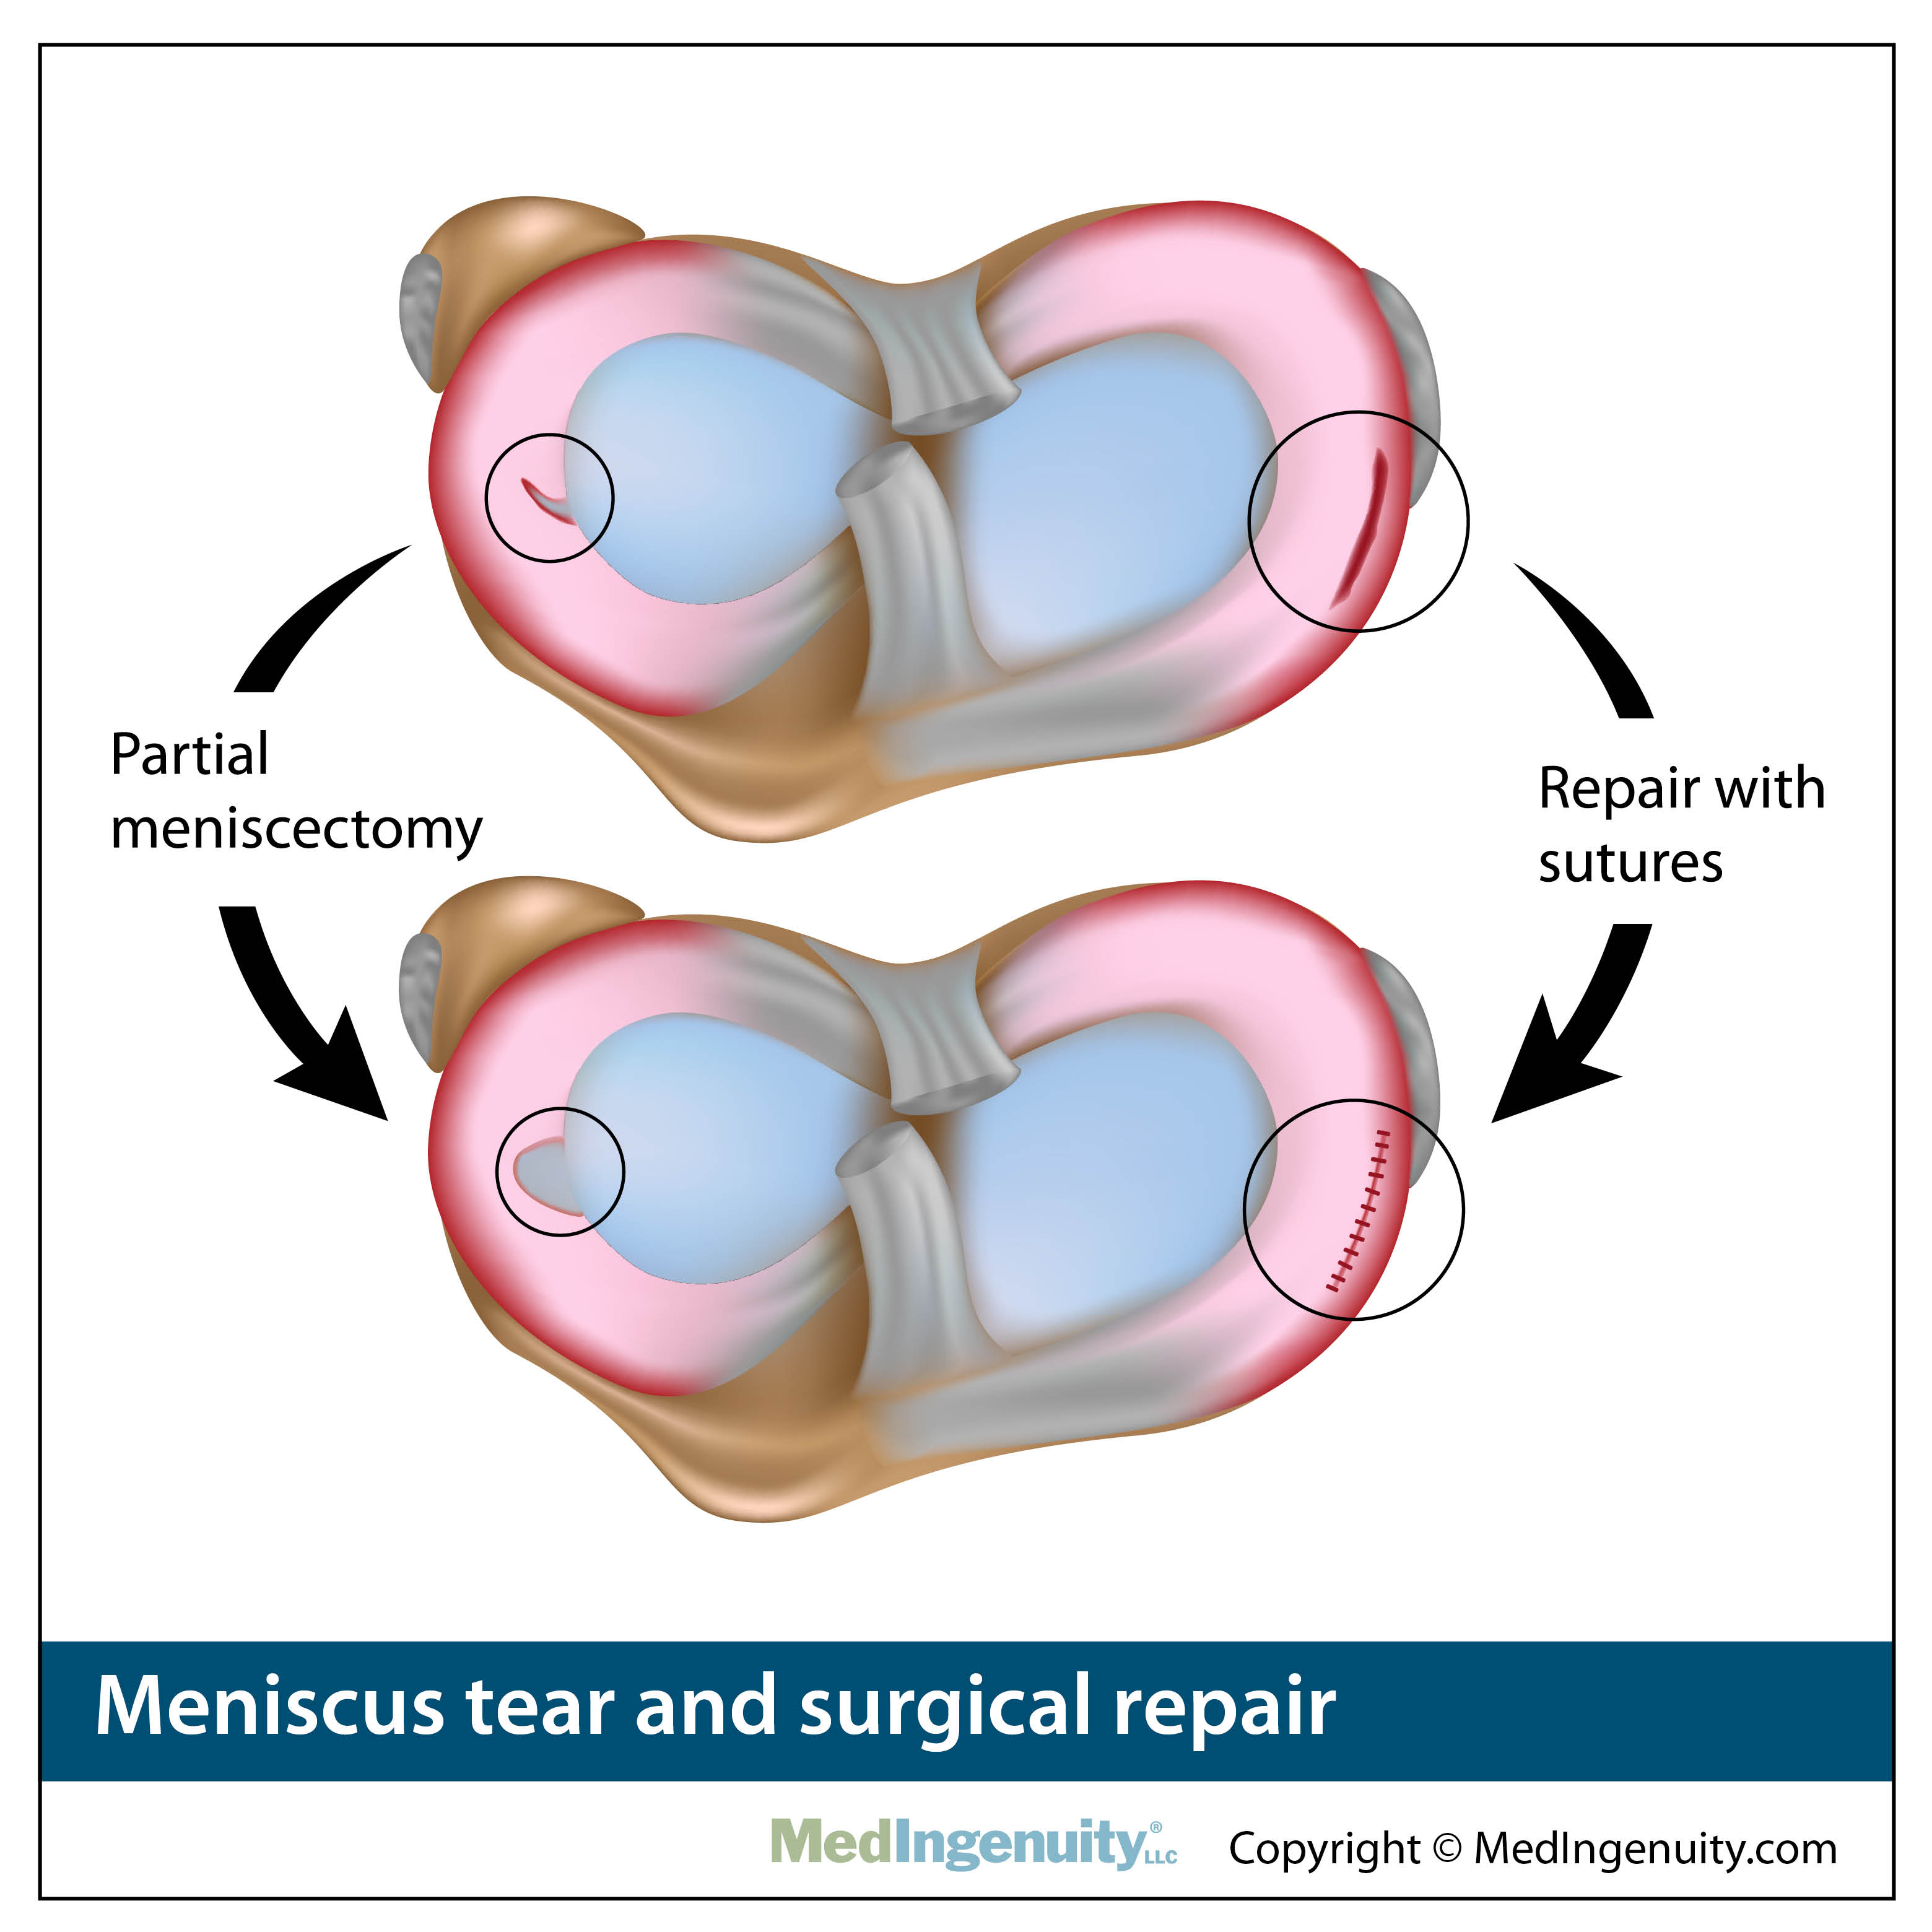 meniscus tear and surgical repair anatomy